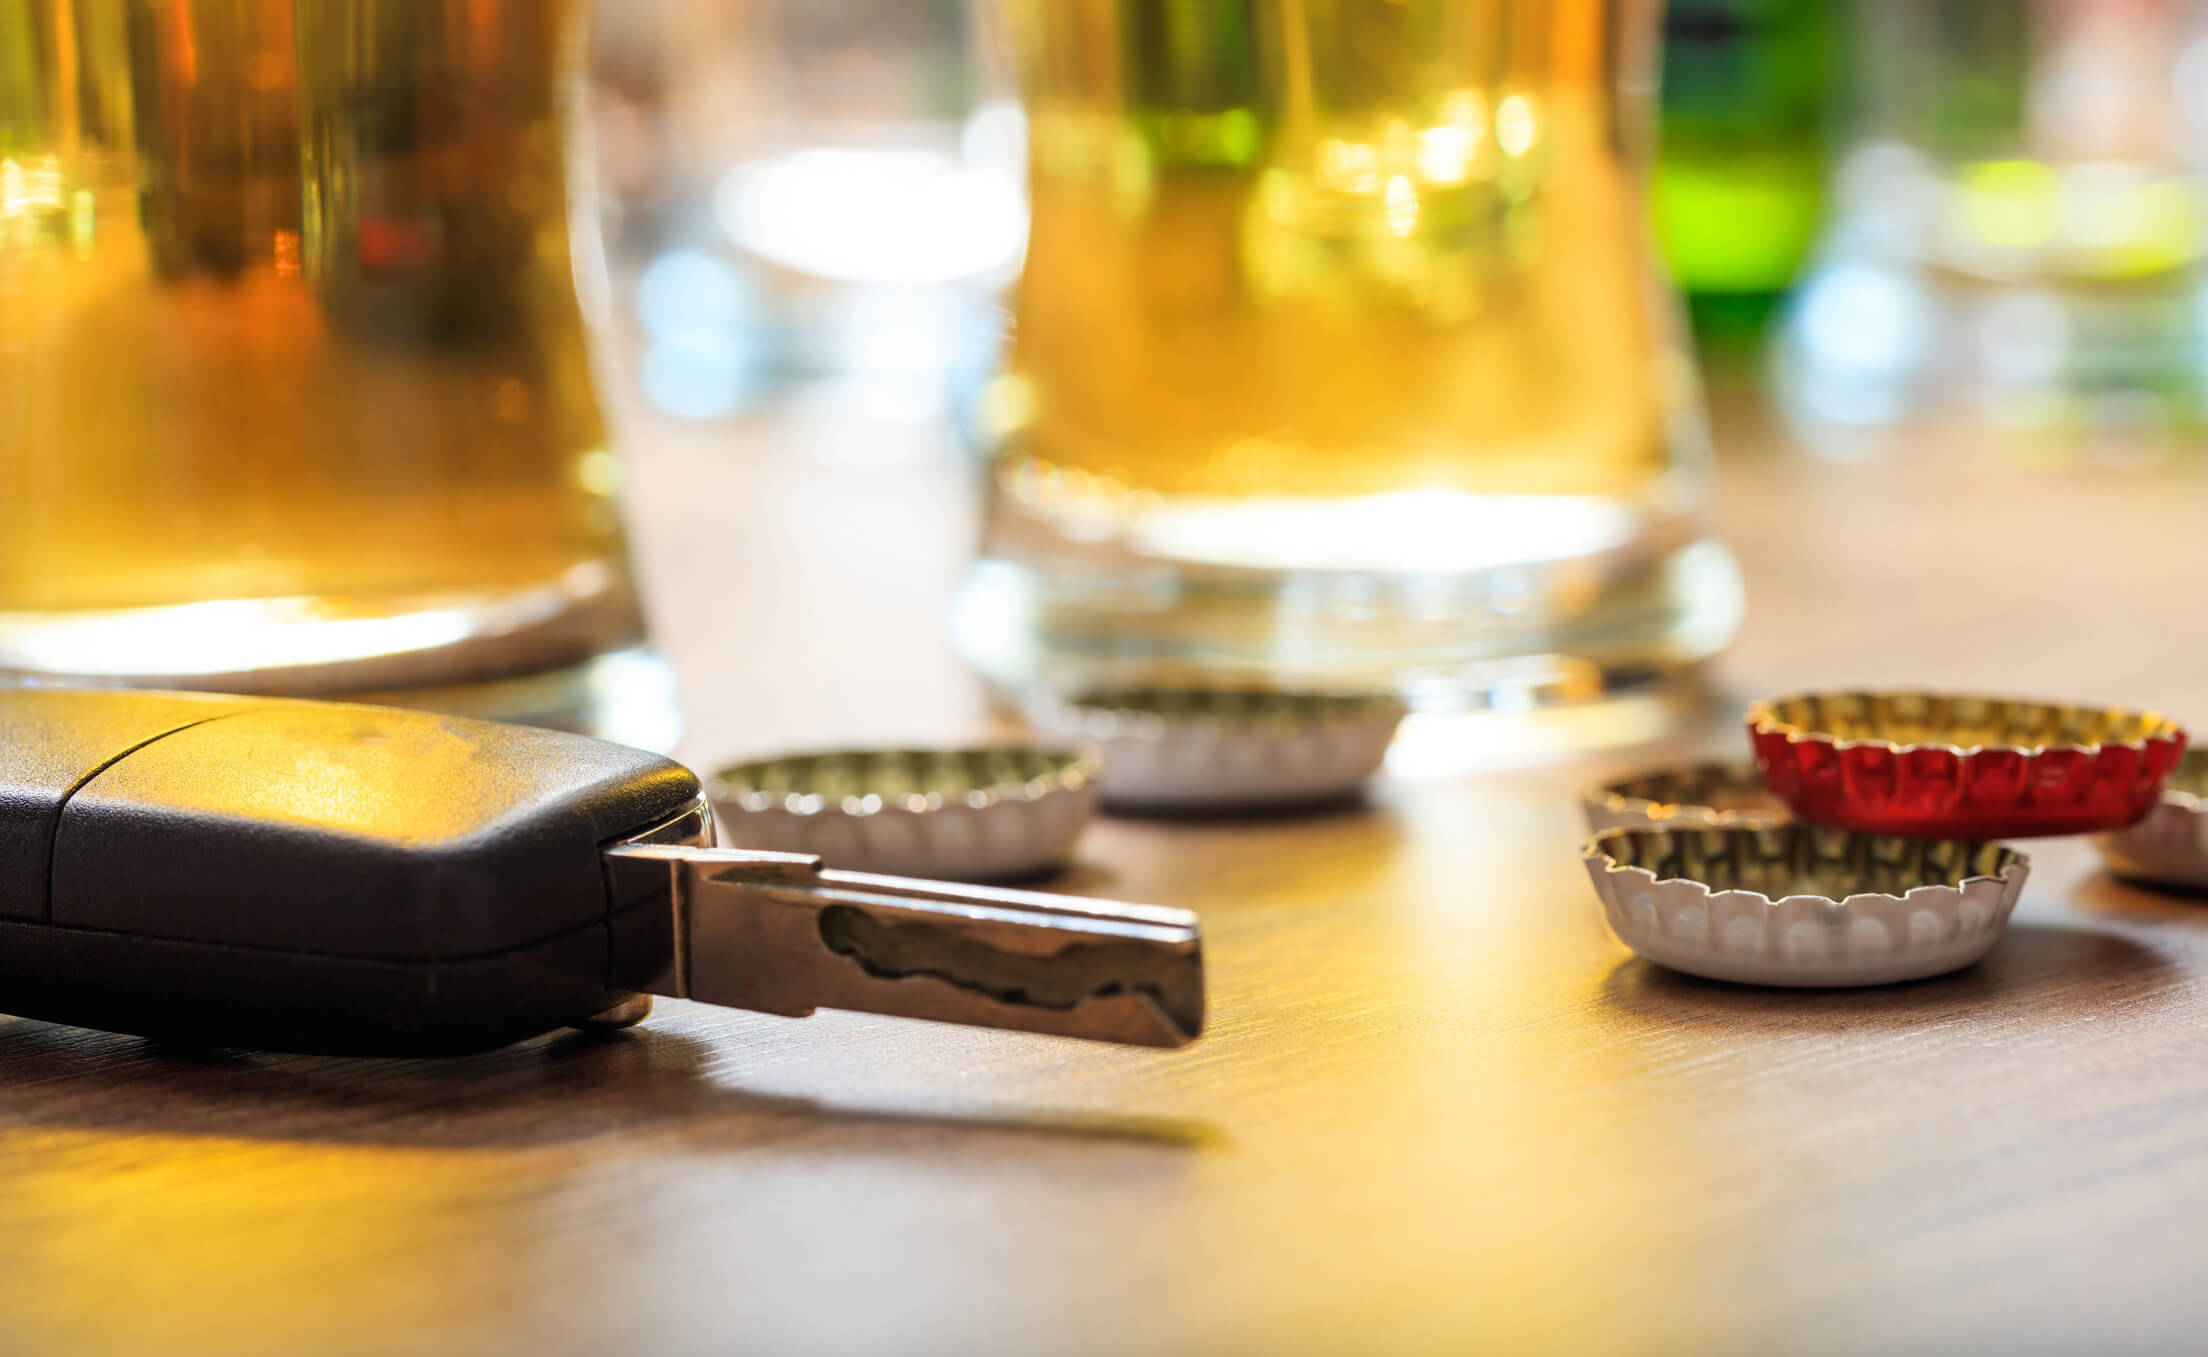 My.Attorney discusses the most common defenses to a DUI charge in Florida.